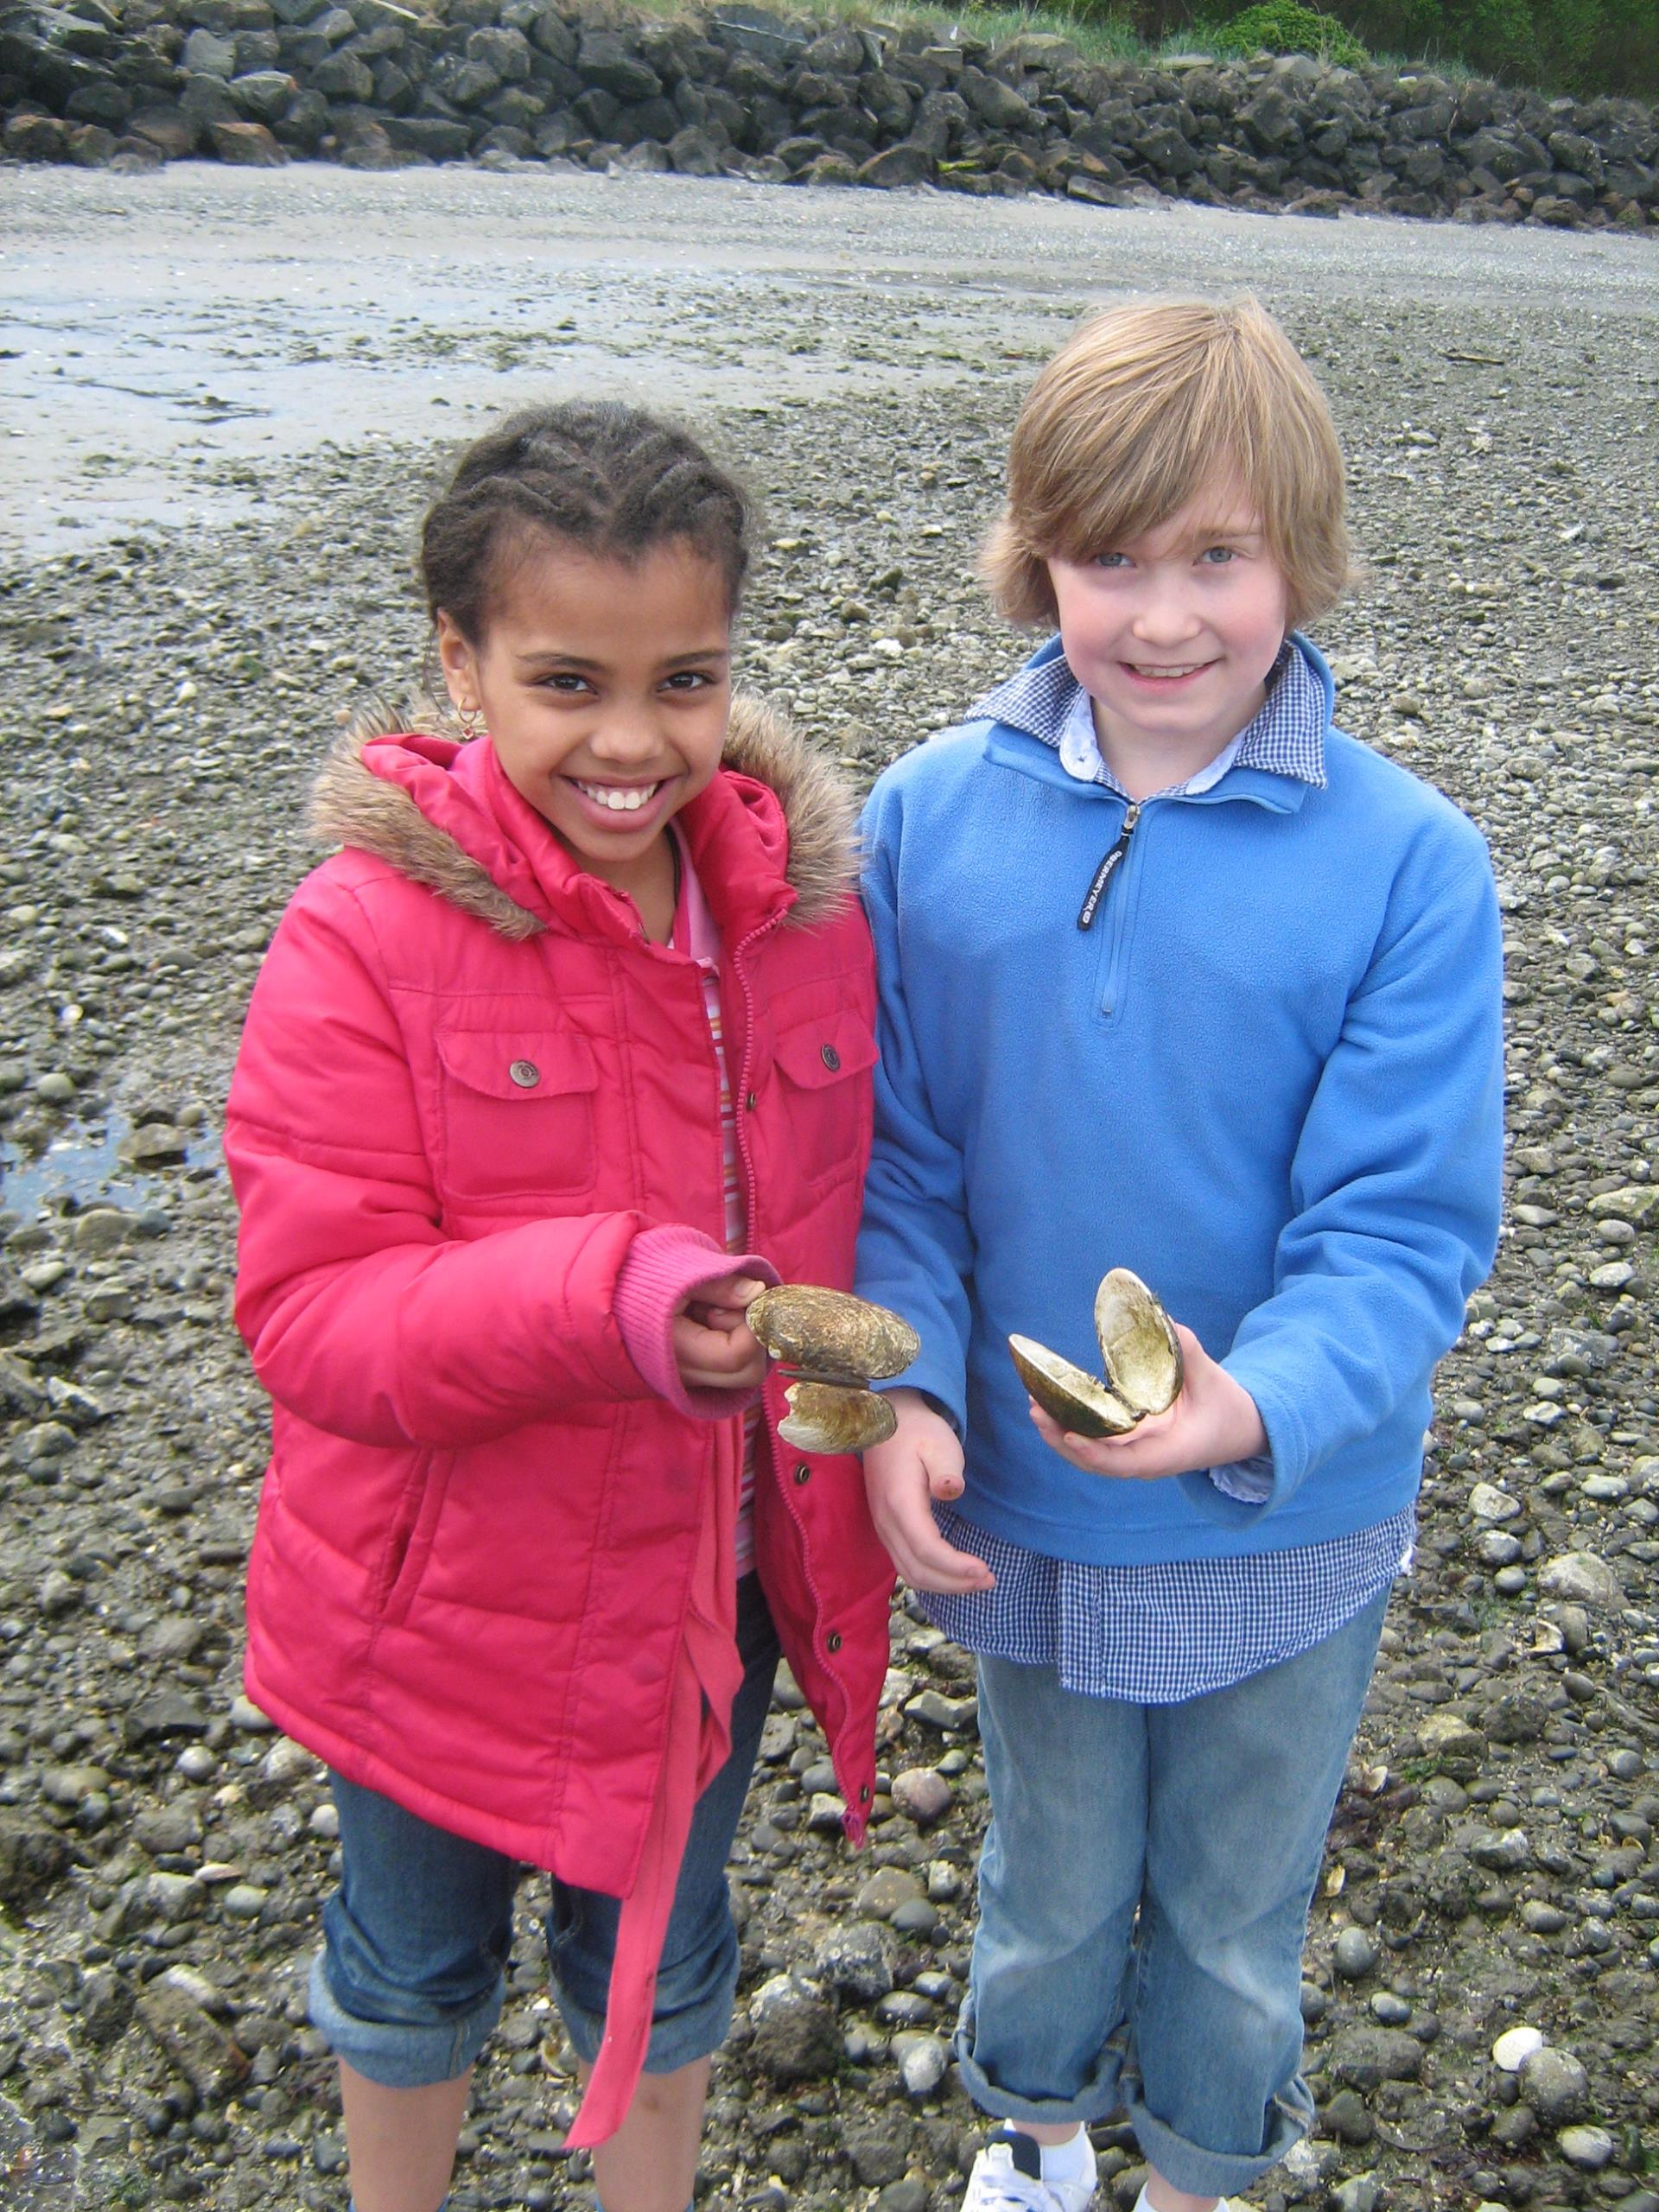 Two kids at a rocky beach, smiling and holding clam shells